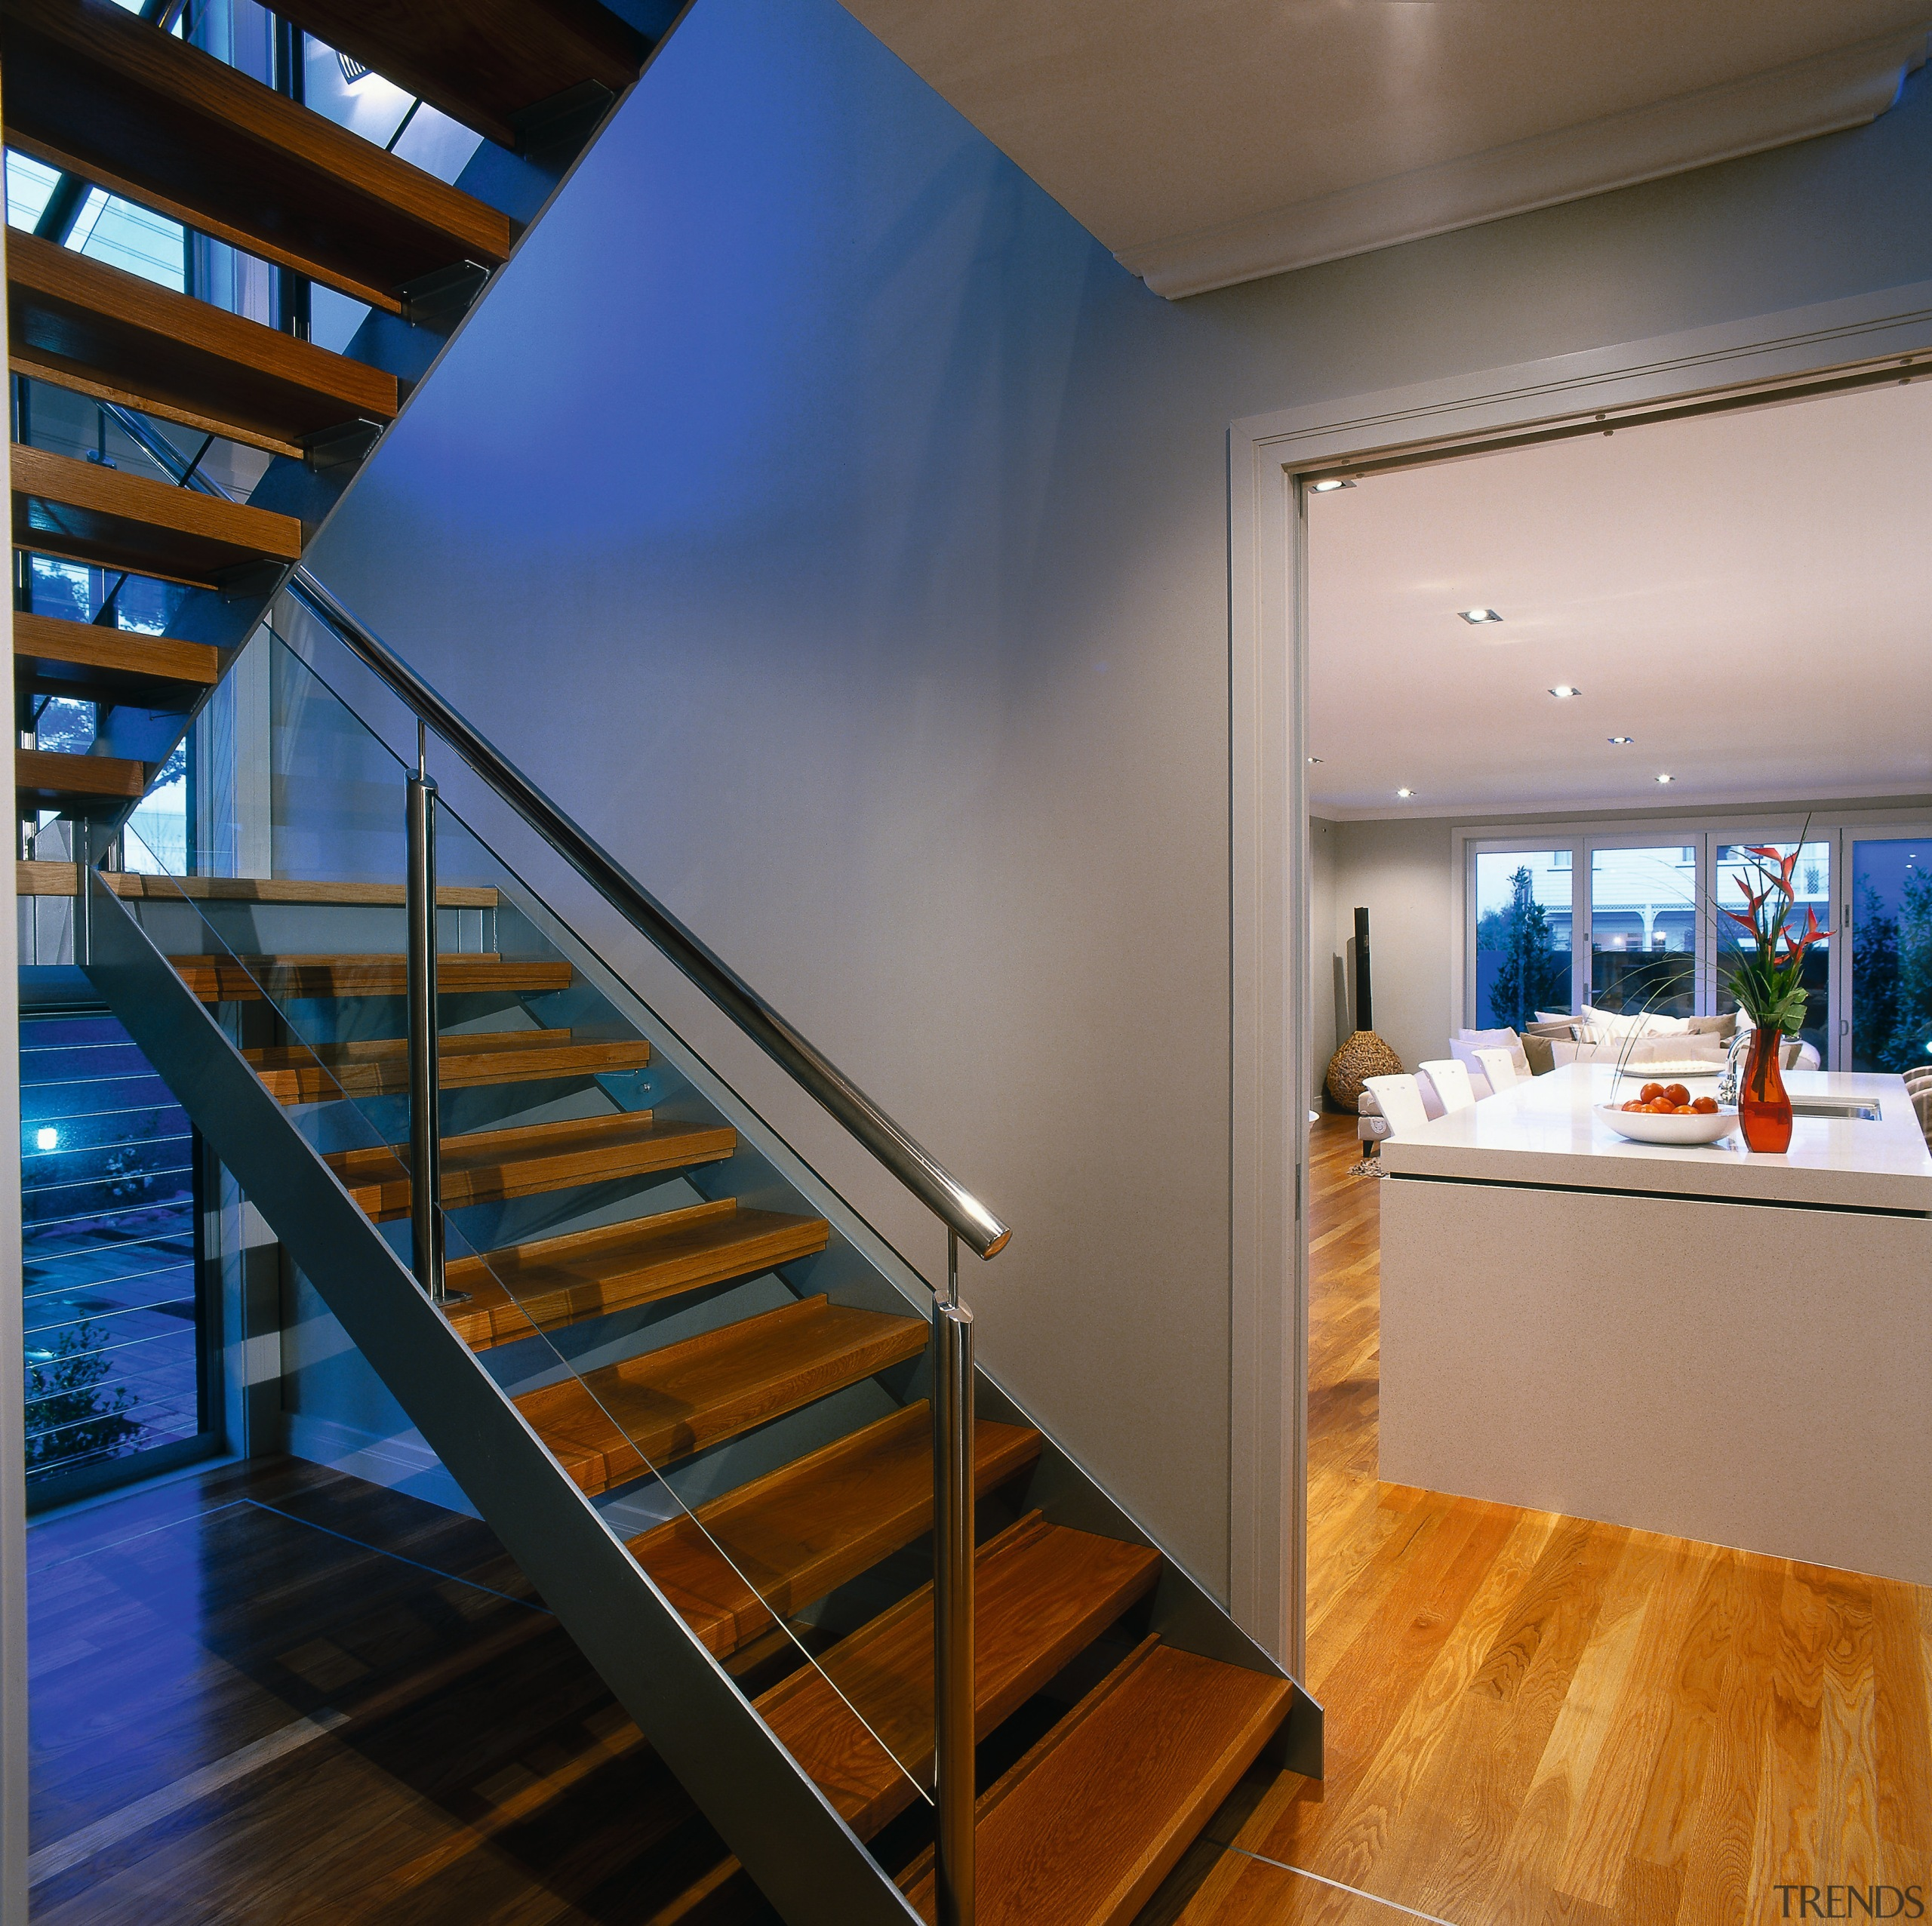 View of the stairway - View of the architecture, ceiling, daylighting, handrail, house, interior design, real estate, stairs, wood